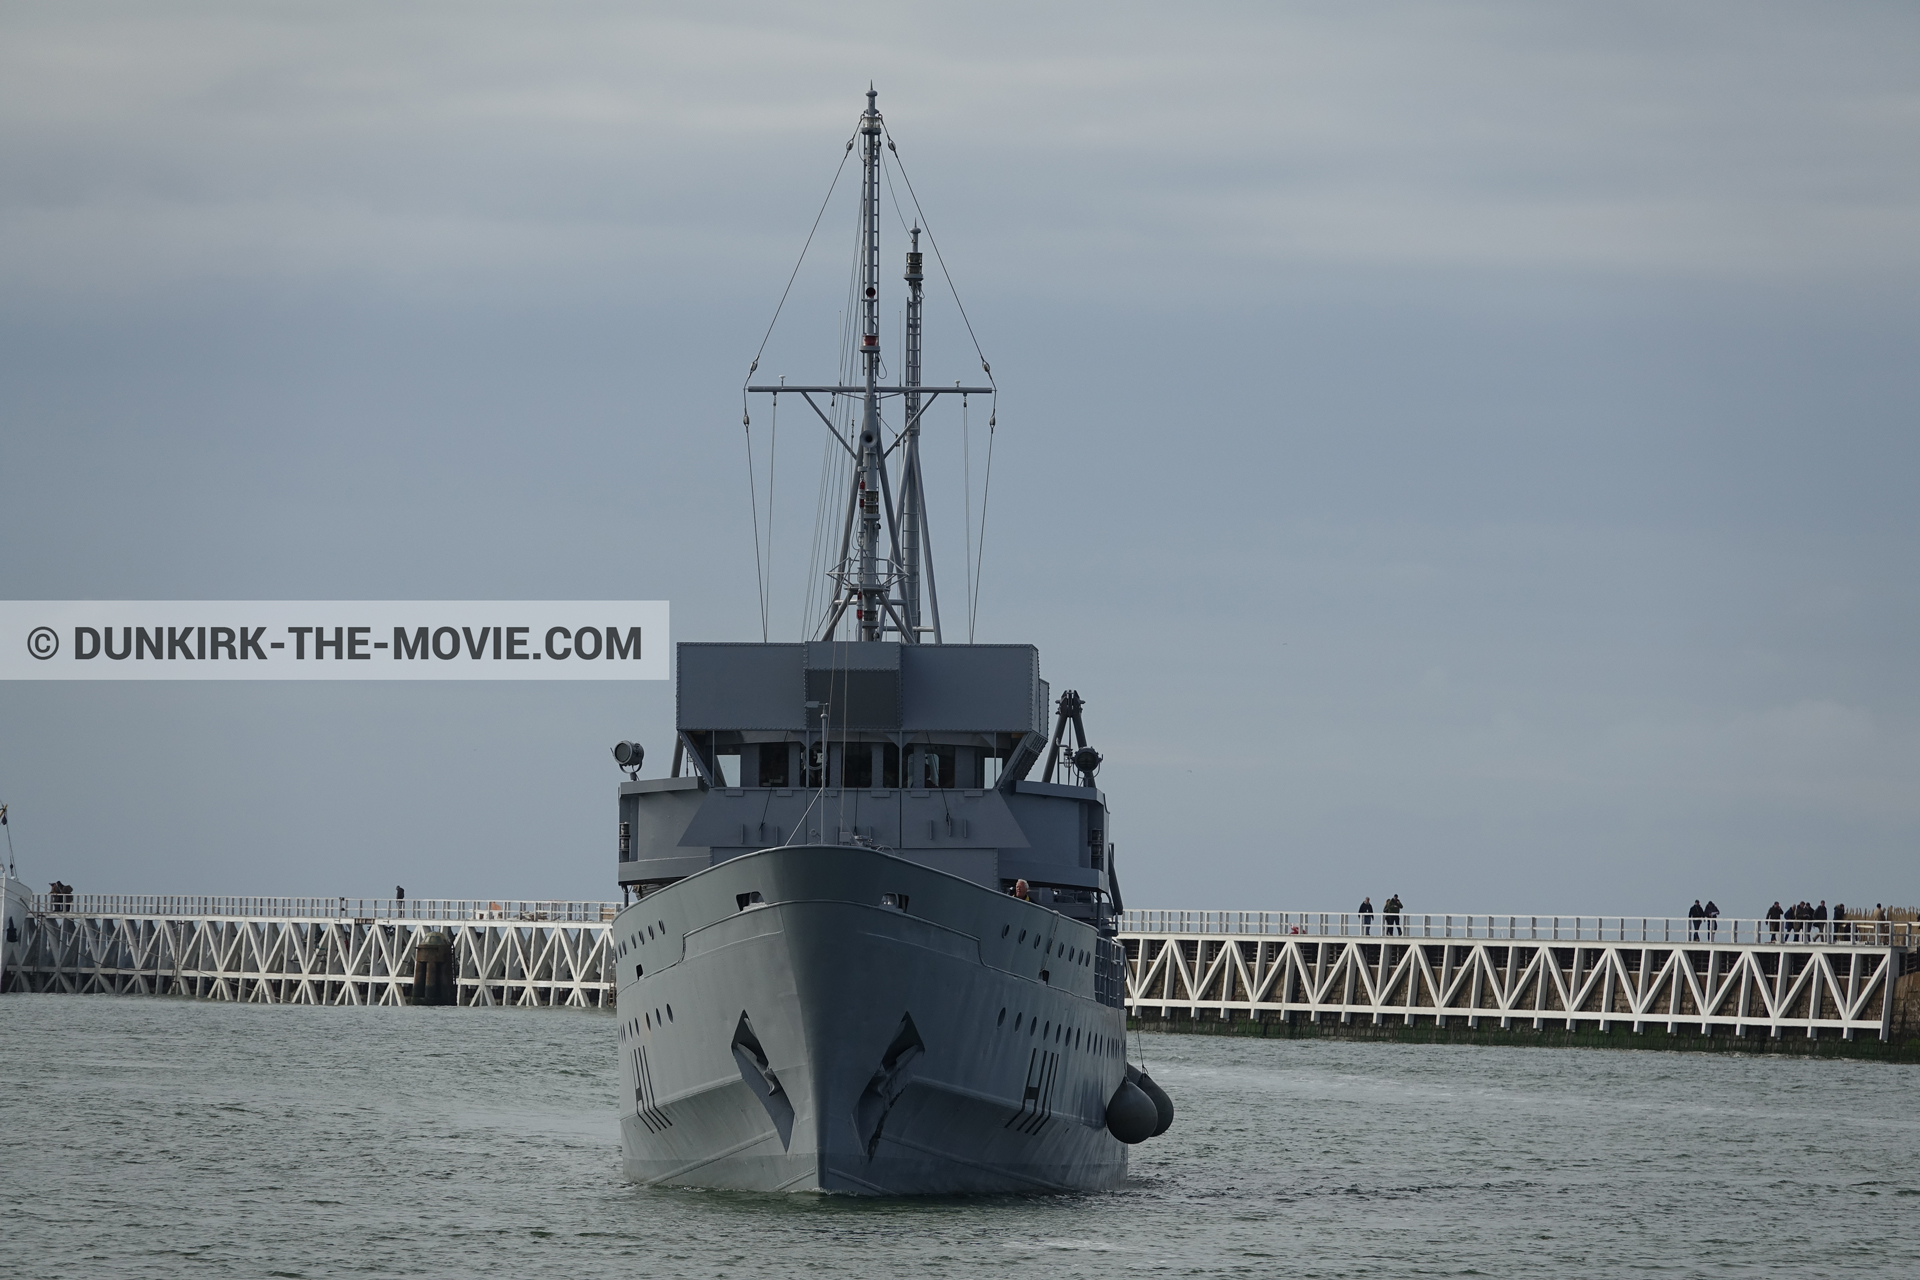 Picture with grey sky, H11 - MLV Castor, EST pier, calm sea,  from behind the scene of the Dunkirk movie by Nolan